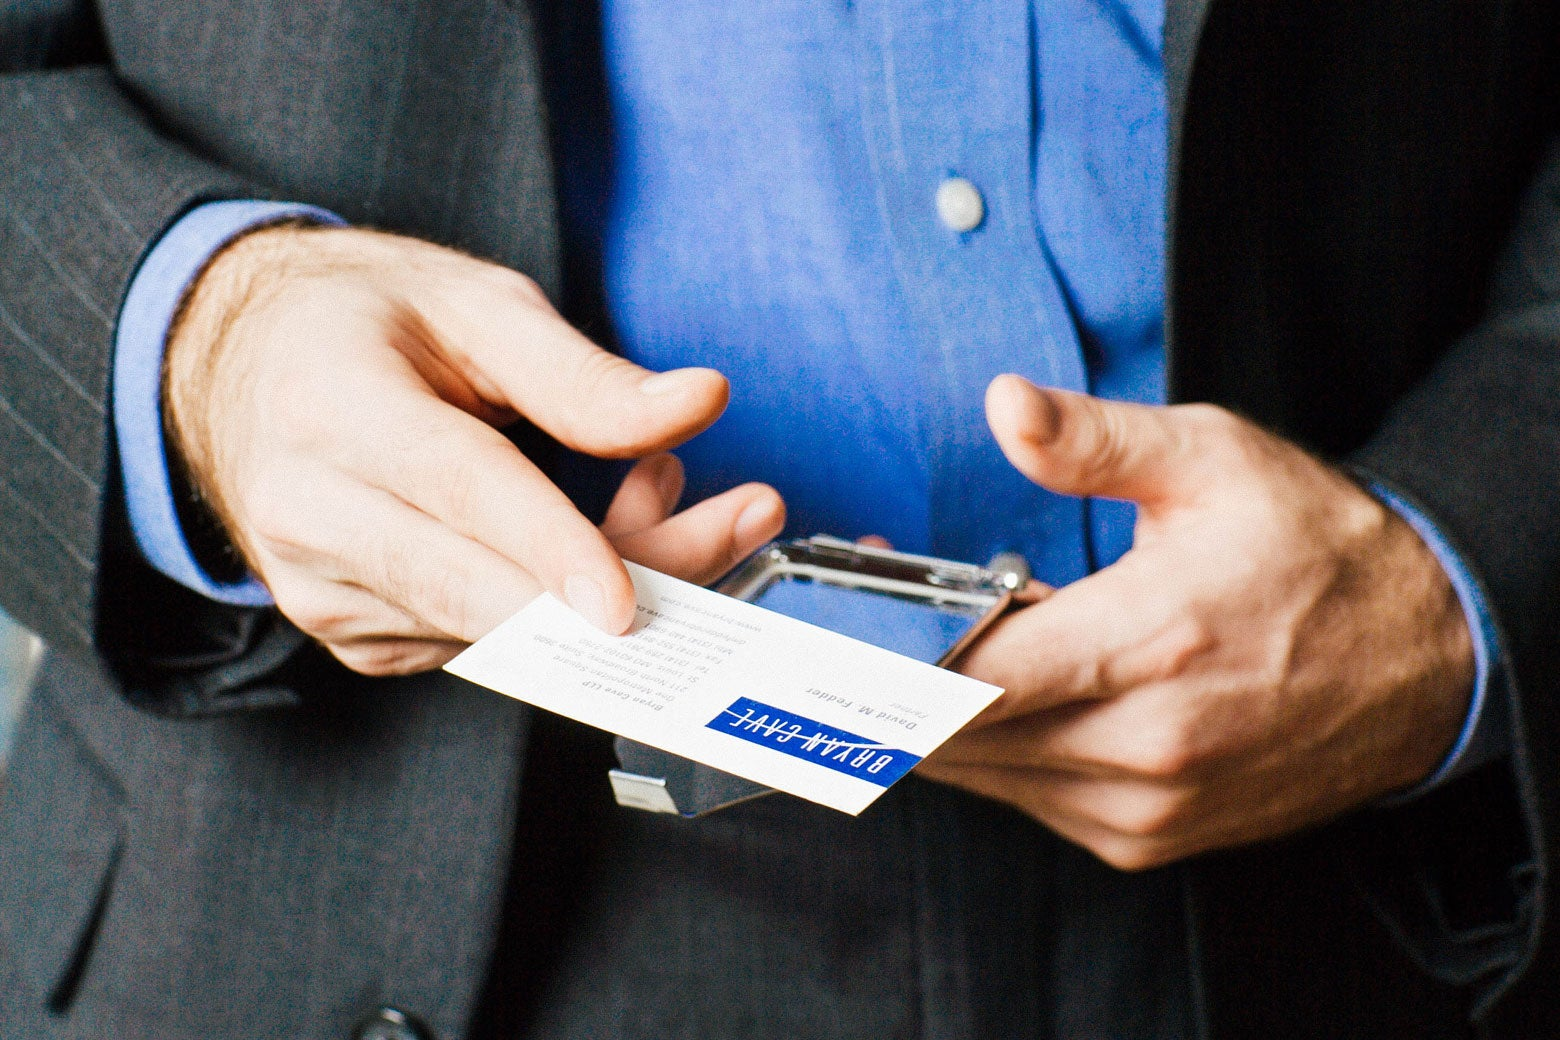 Stock image of a man holding out a business card.